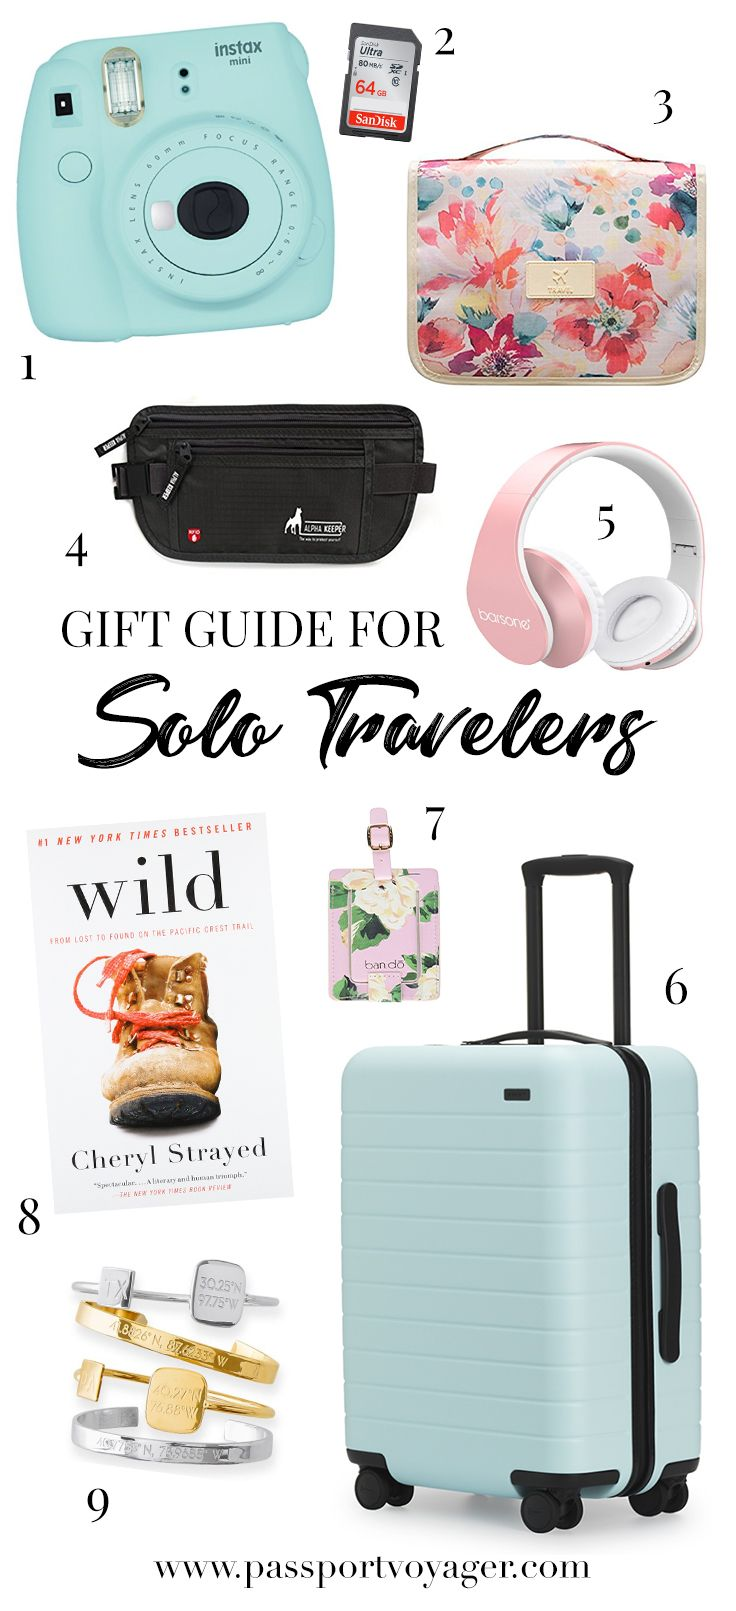 Looking for the perfect gift for the solo traveler in your life but not sure what they need? This gift guide has useful ideas ranging from budget to luxury!